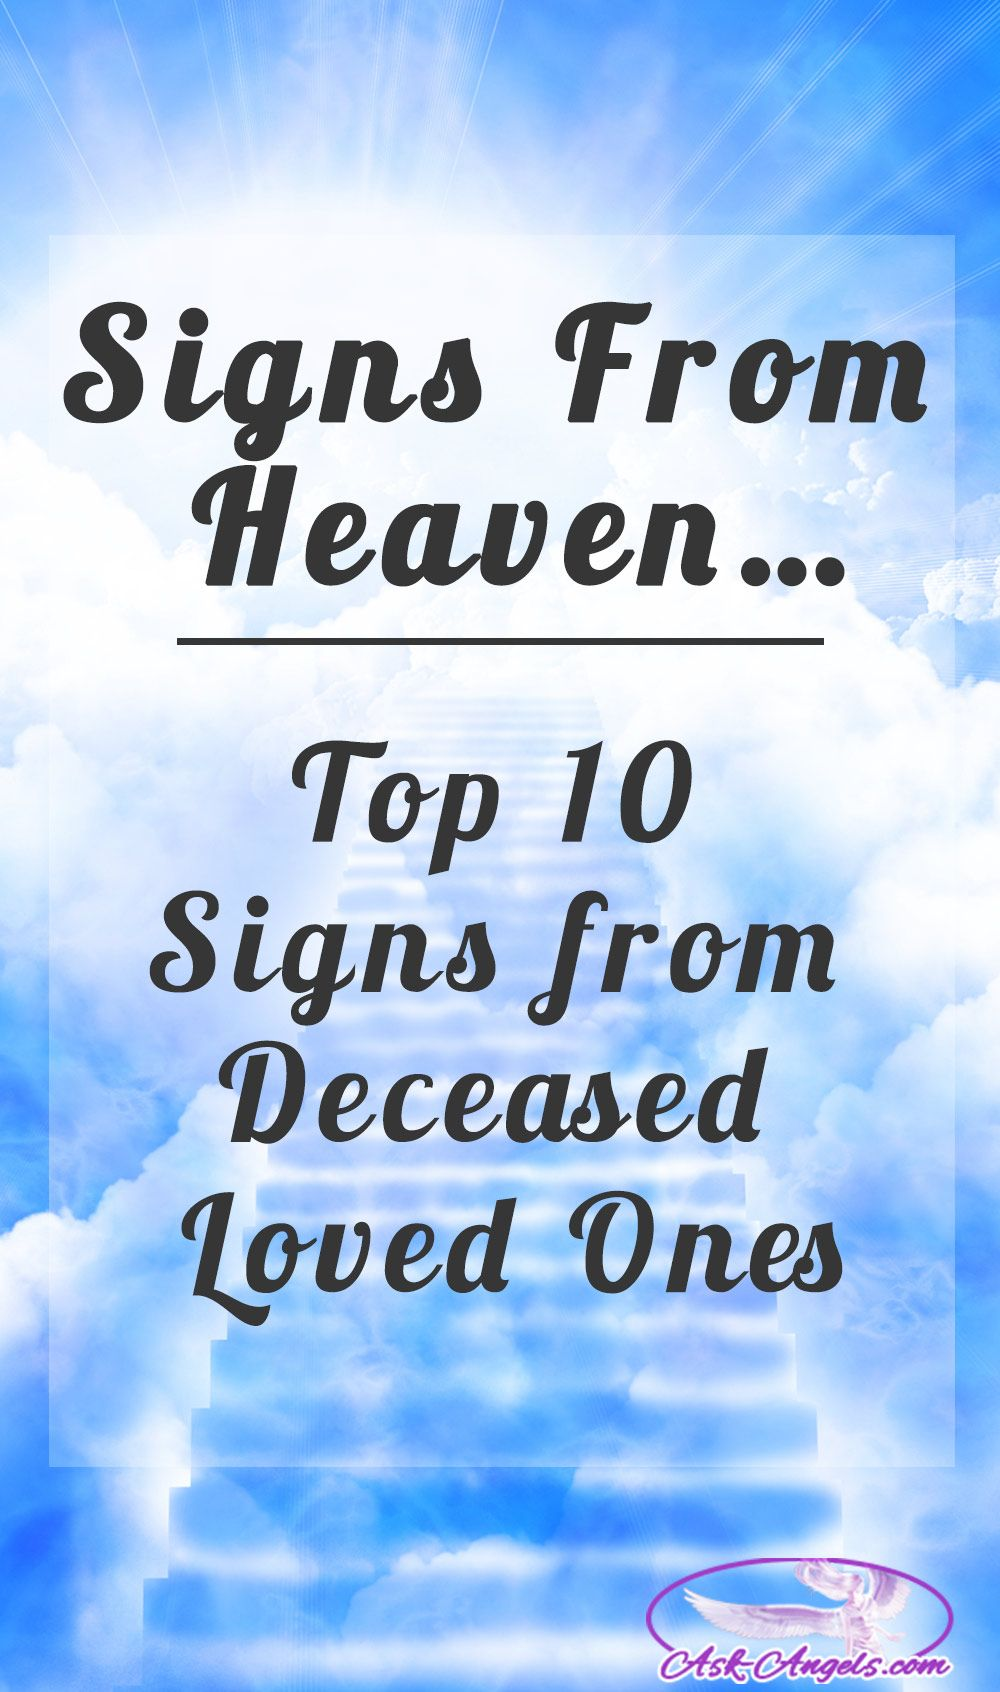 Signs From Heaven Top 9 Signs From Deceased Loved Ones